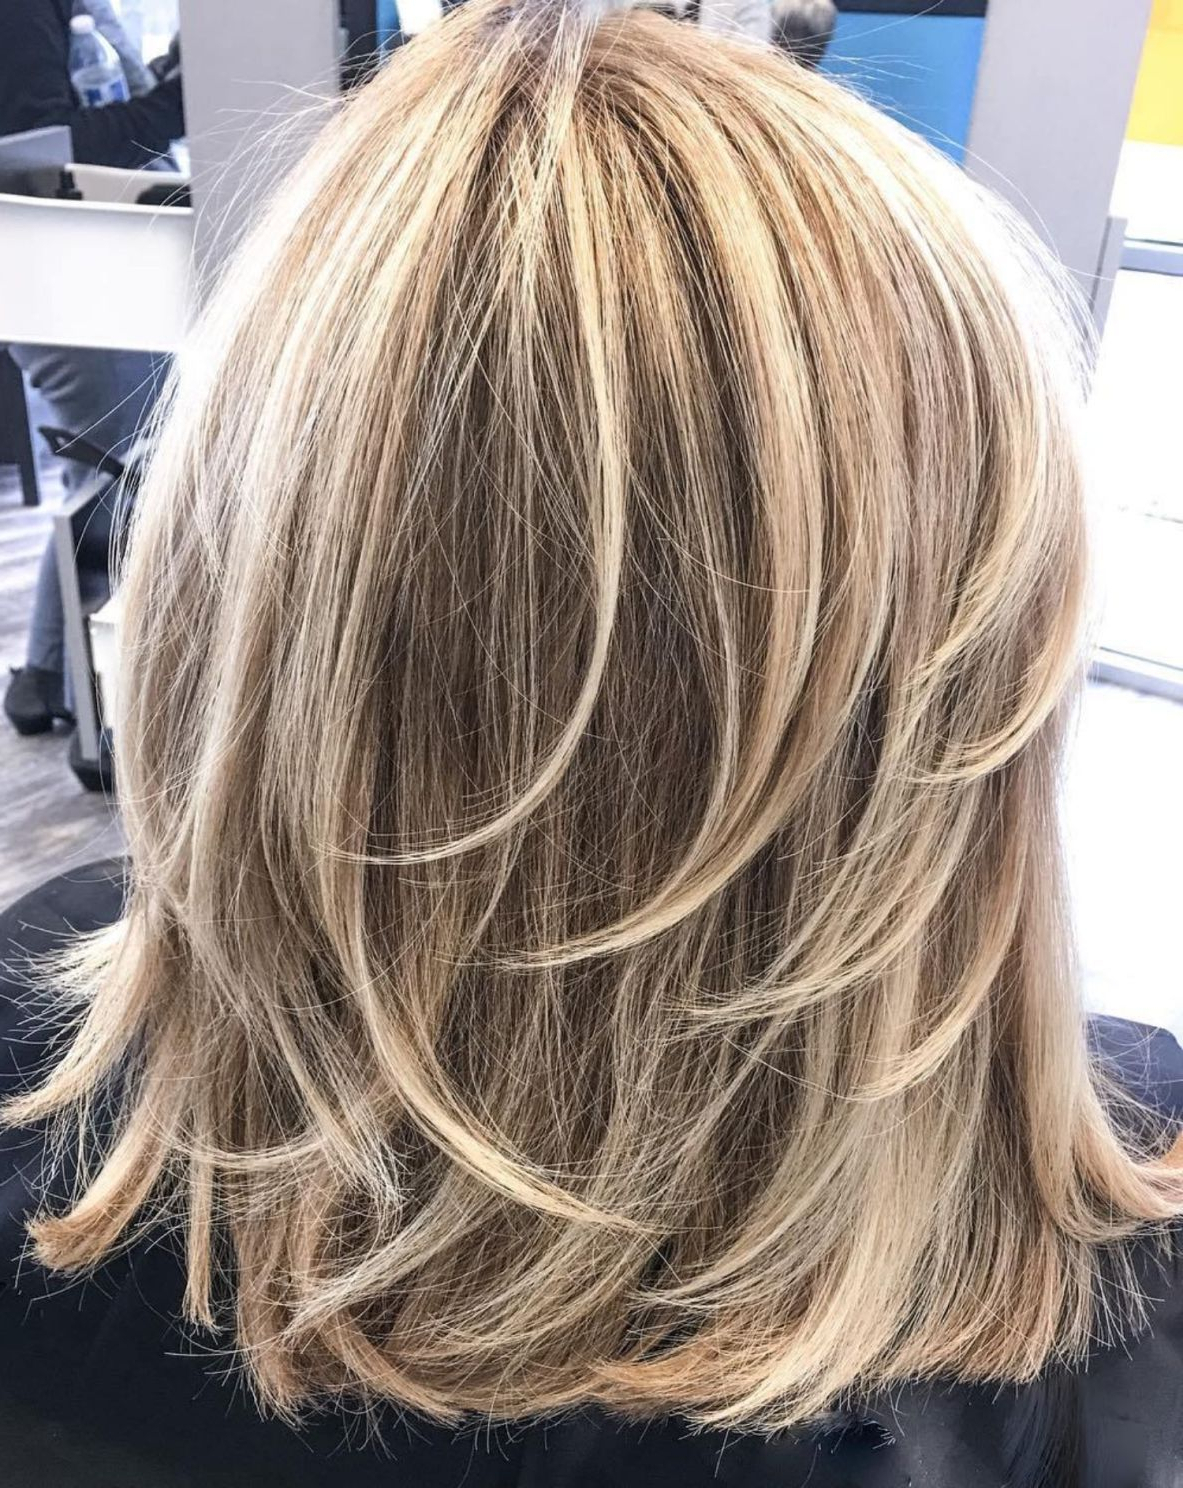 60 Fun And Flattering Medium Hairstyles For Women In 2019 With Regard To Well Liked Thick Feathered Blonde Lob Hairstyles (View 2 of 20)